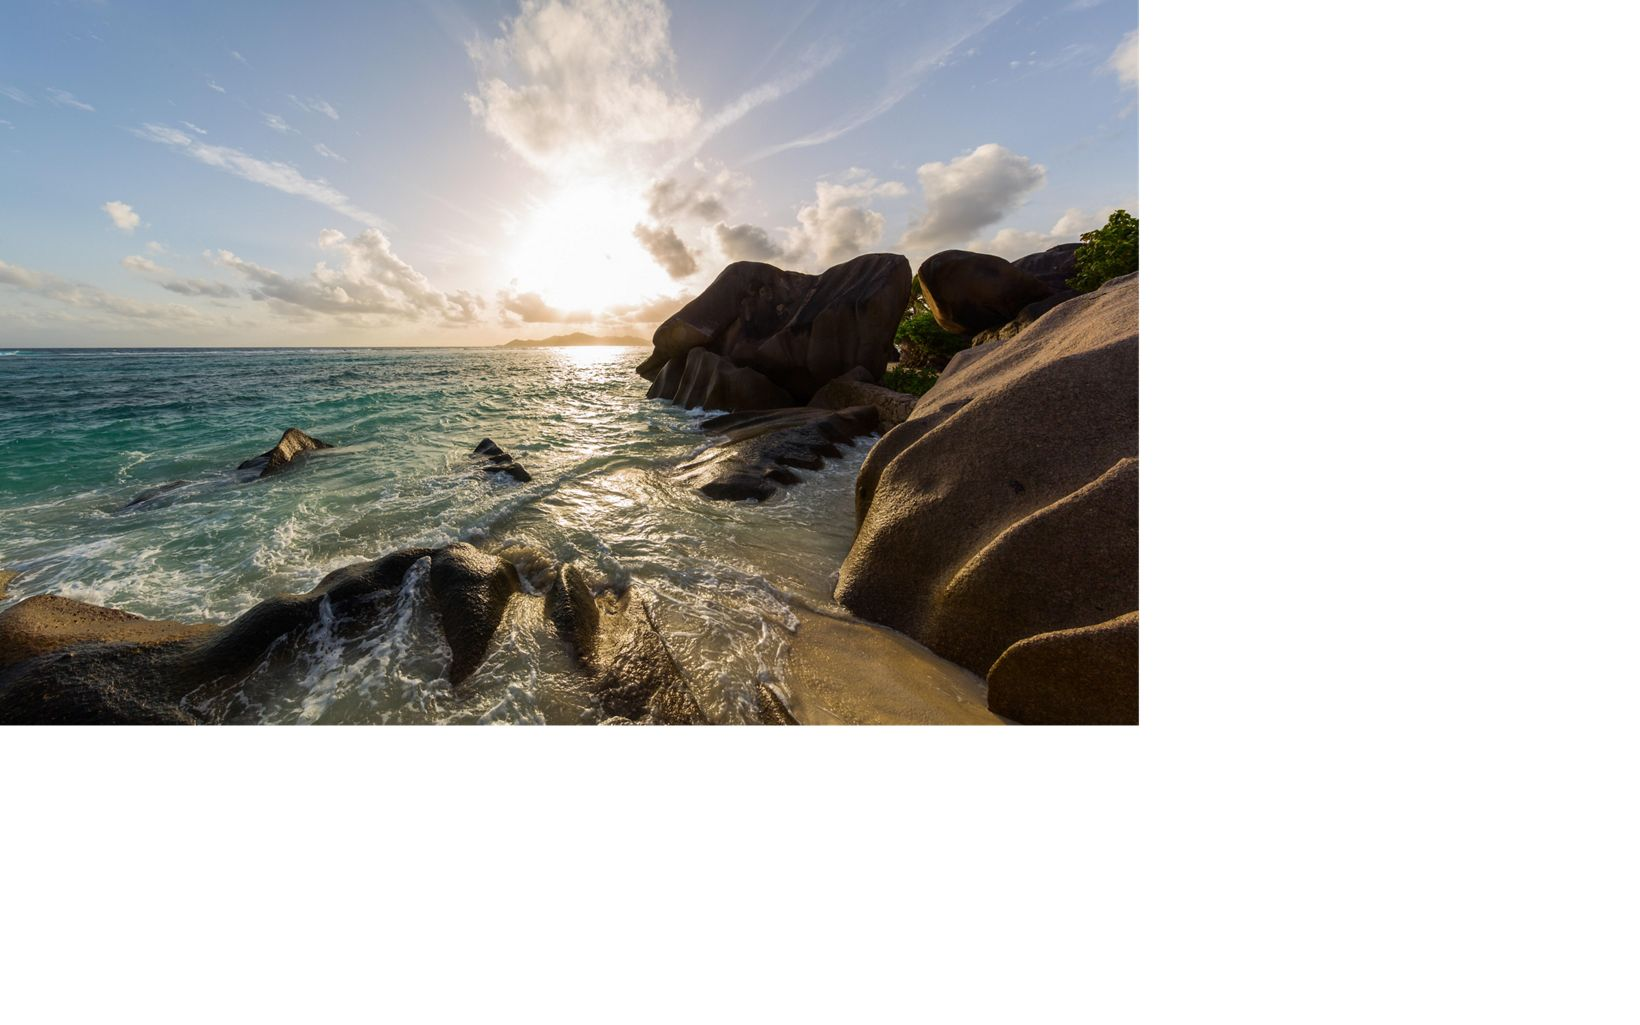 Worn granite rocks in the surf and sand define the coastlines of Seychelles's inner islands.